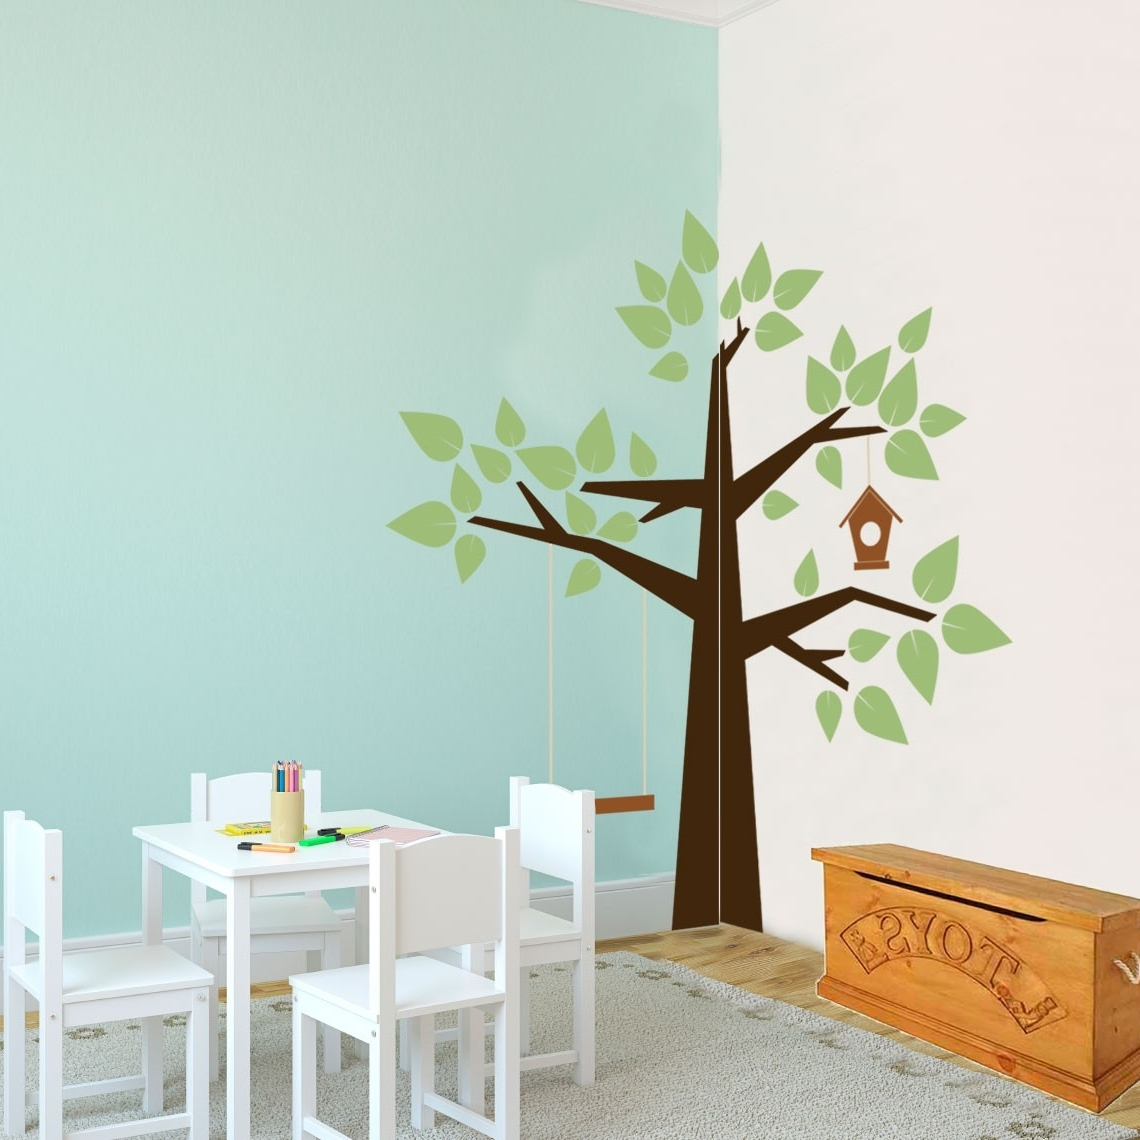 Preschool Classroom Wall Decals Intended For Popular Whimsical Corner Tree – Nature – Vinyl Wall Art Decal For Kids (View 2 of 15)